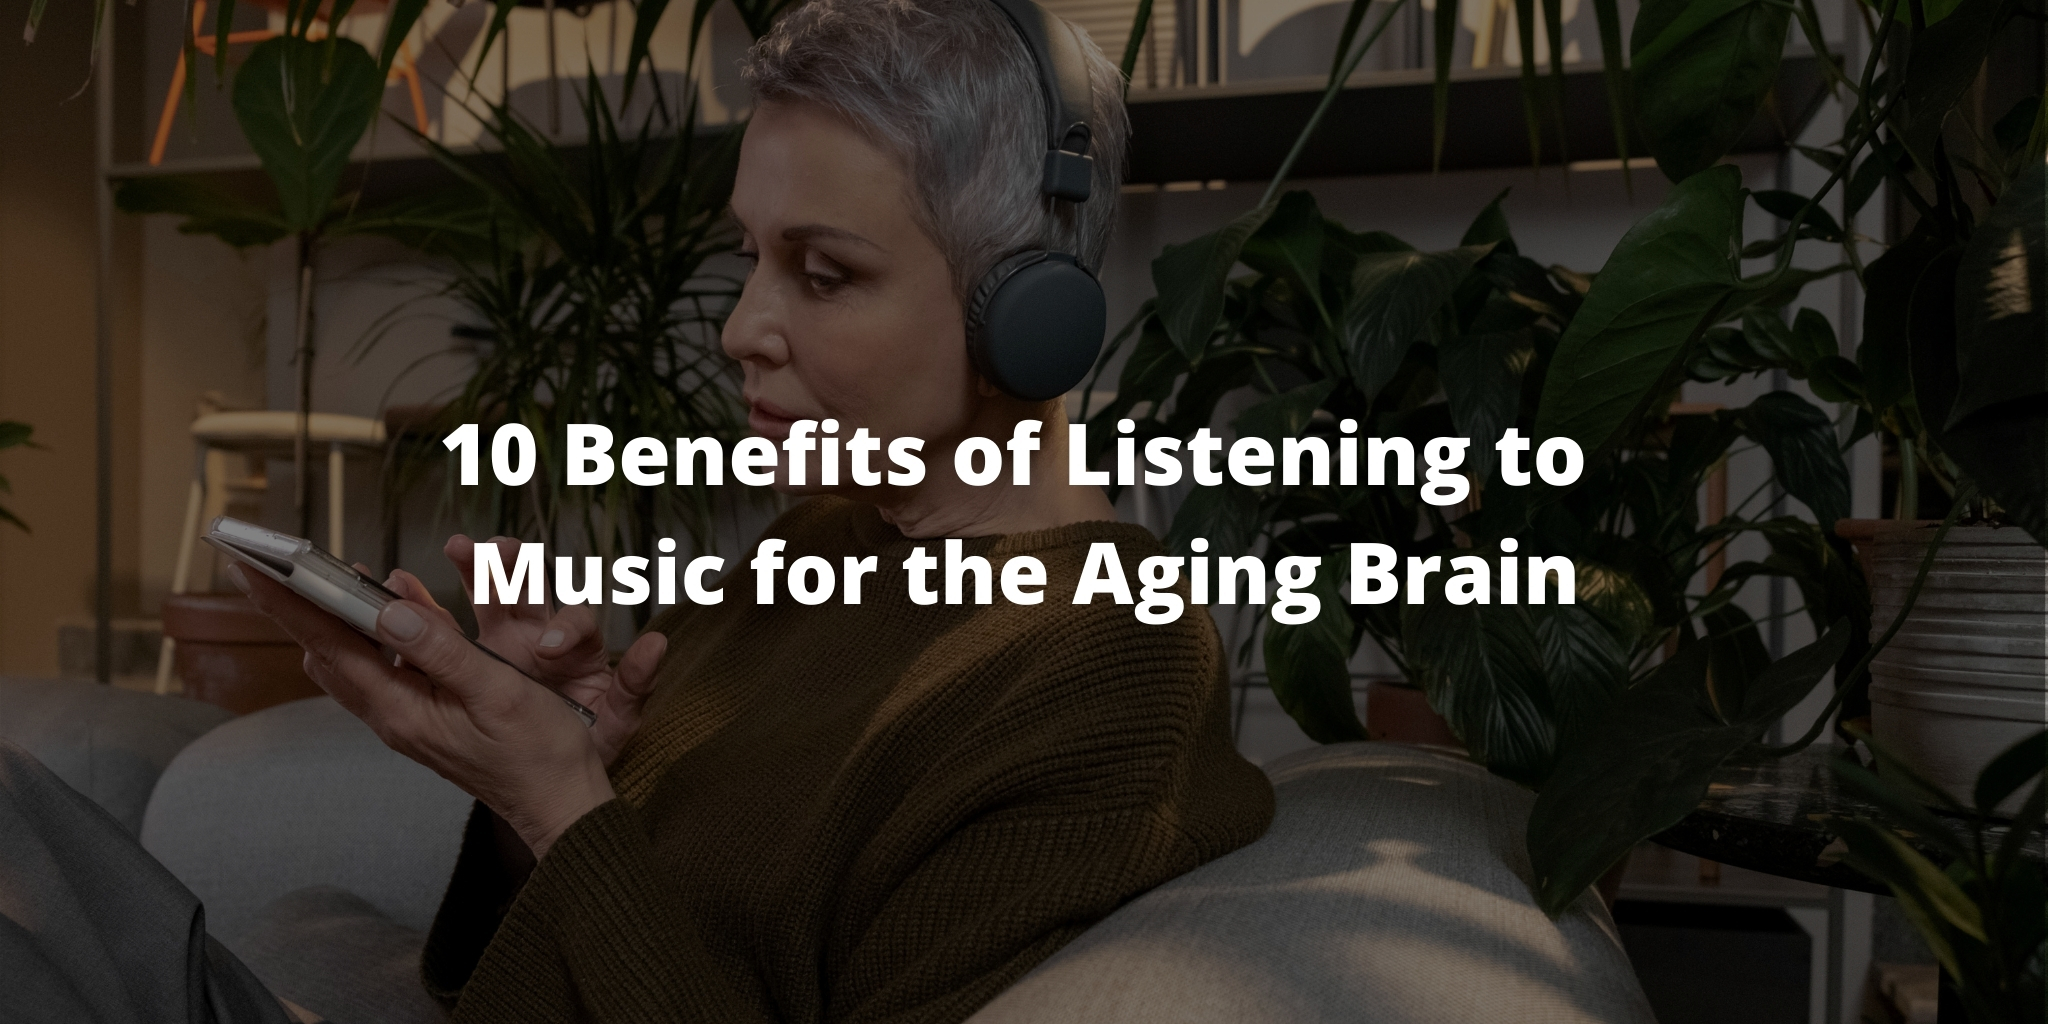 10 Benefits of Listening to Music for the Aging Brain